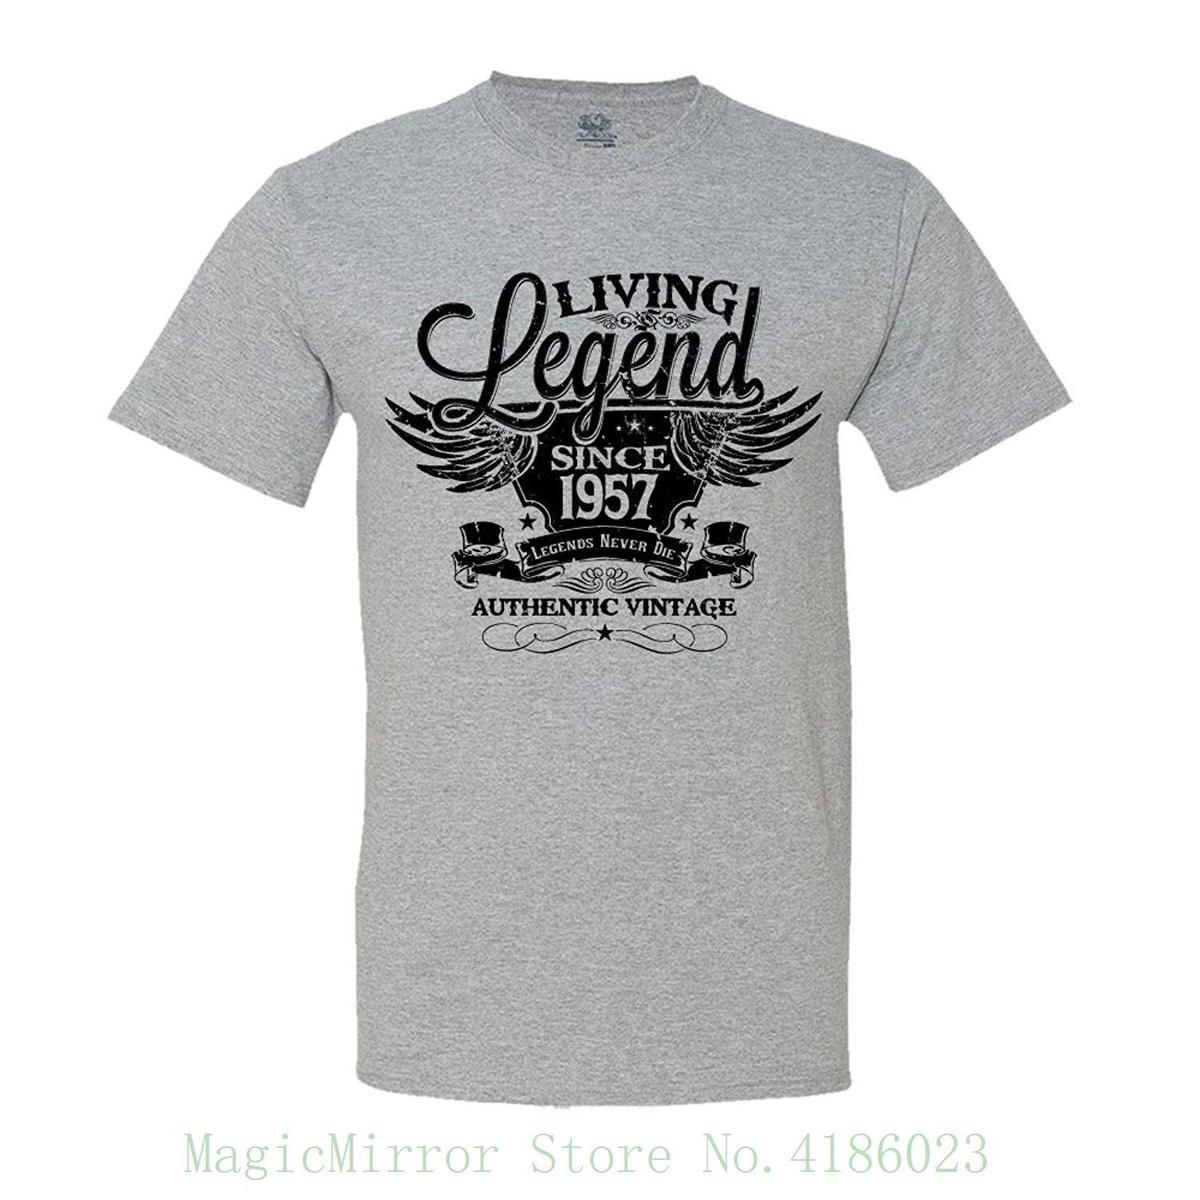 Living Legend Since 1957 60th Birthday Gift T Shirt Vintage Turning 60 Tops Summer Cool Funny Tee From Jie71 1467